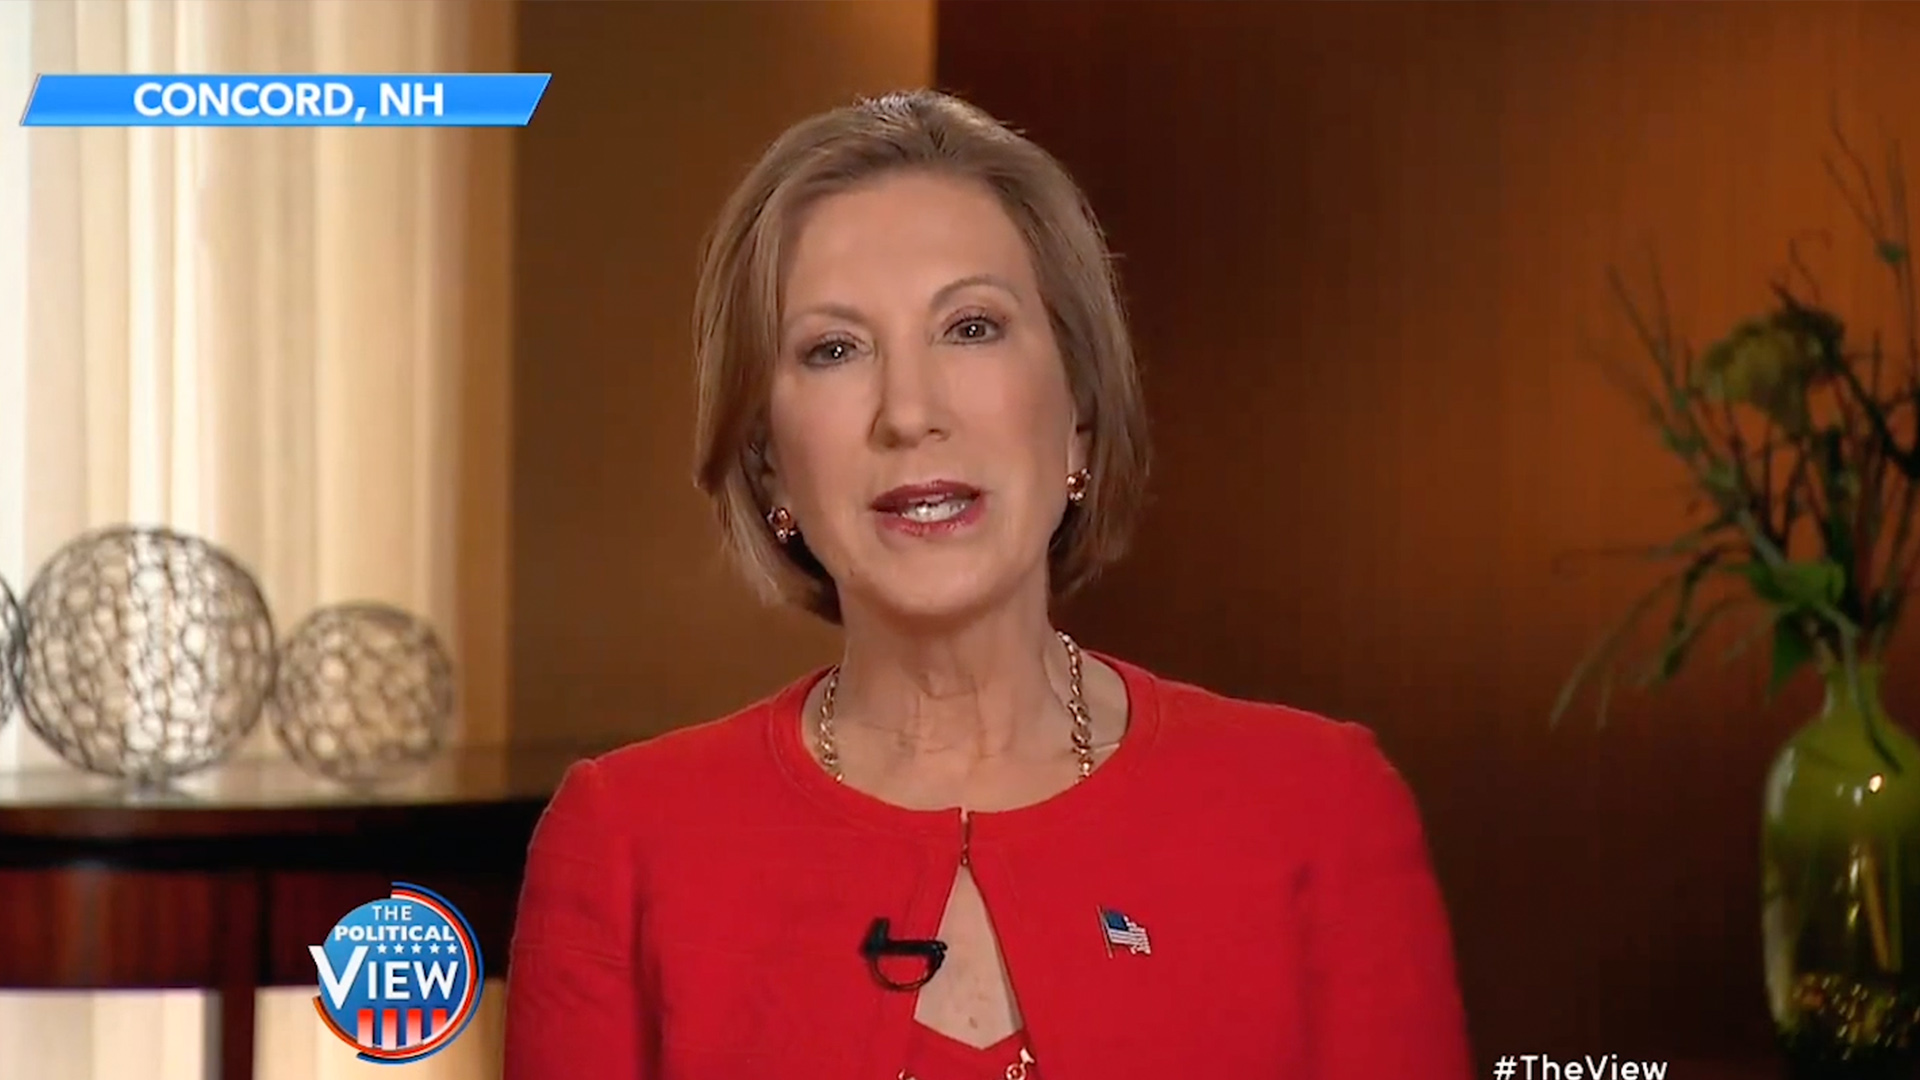 Carly Fiorina Confronts 'The View' After Hosts Said She Looked 'Demented'